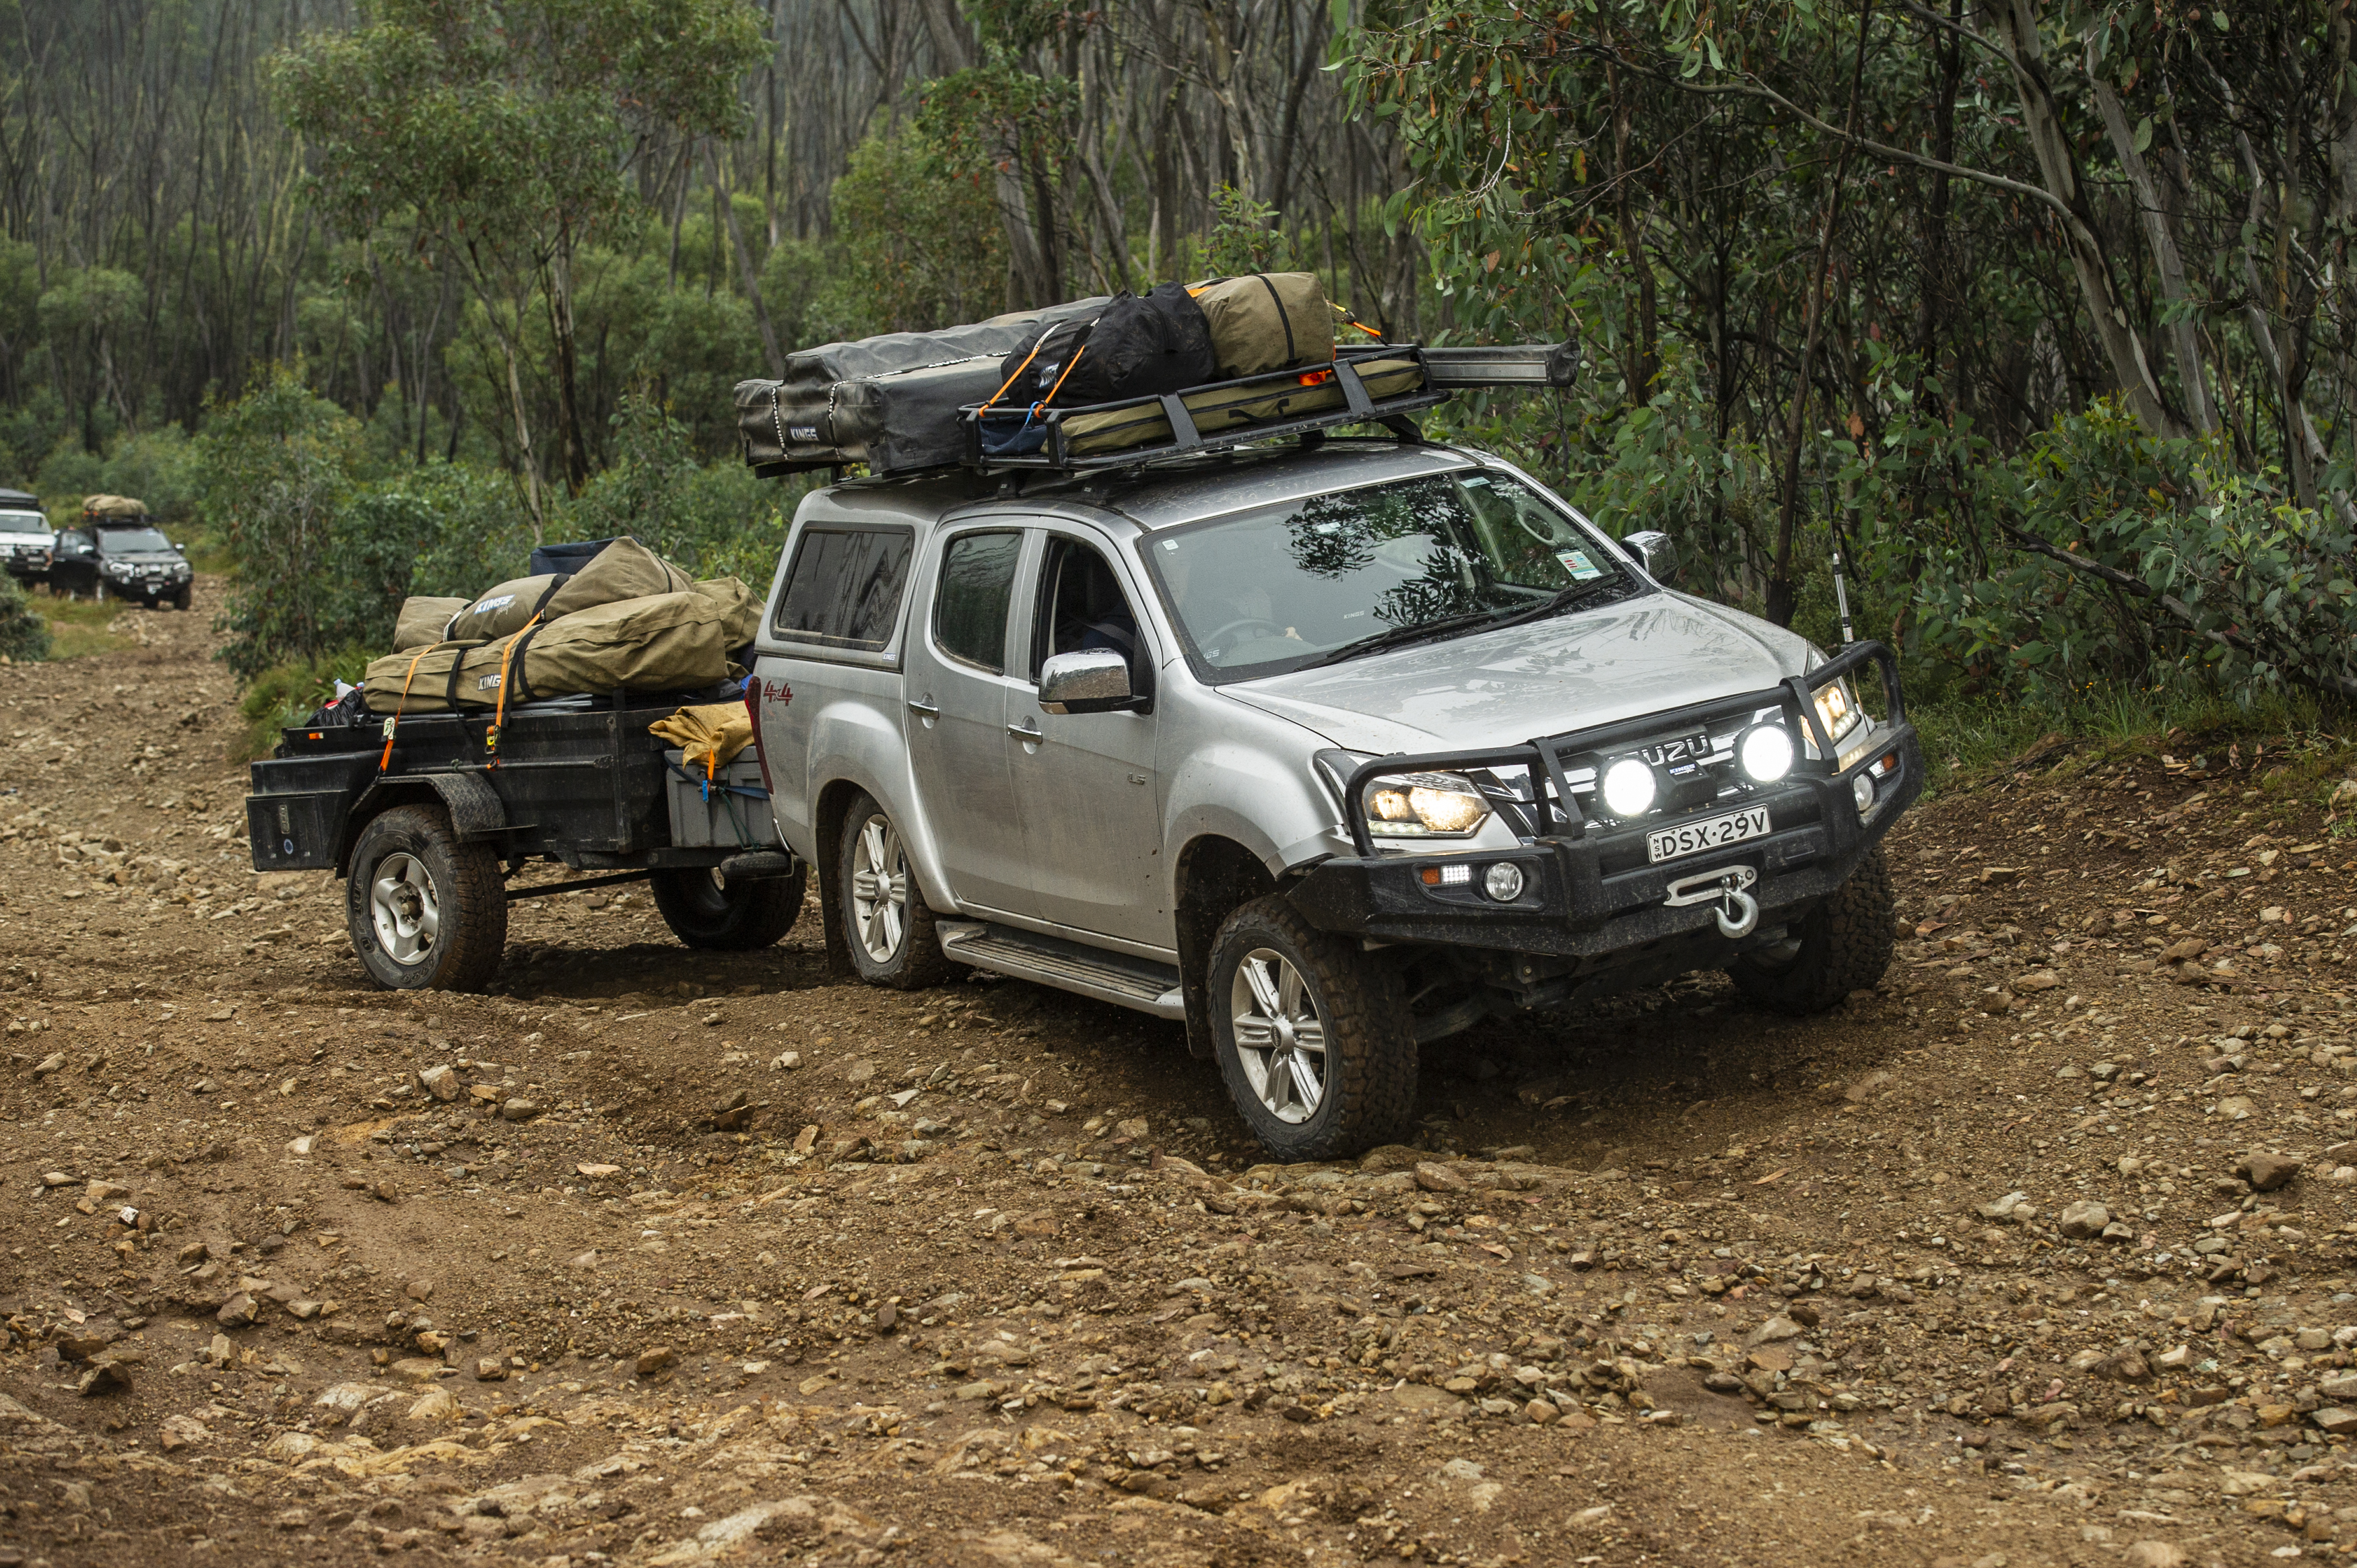 Touring setups 101 - Get out for less with Adventure Kings Gear! - image 190214-HighCountry-Blowering_DJ-268-of-792 on https://www.4wdsupacentre.com.au/news